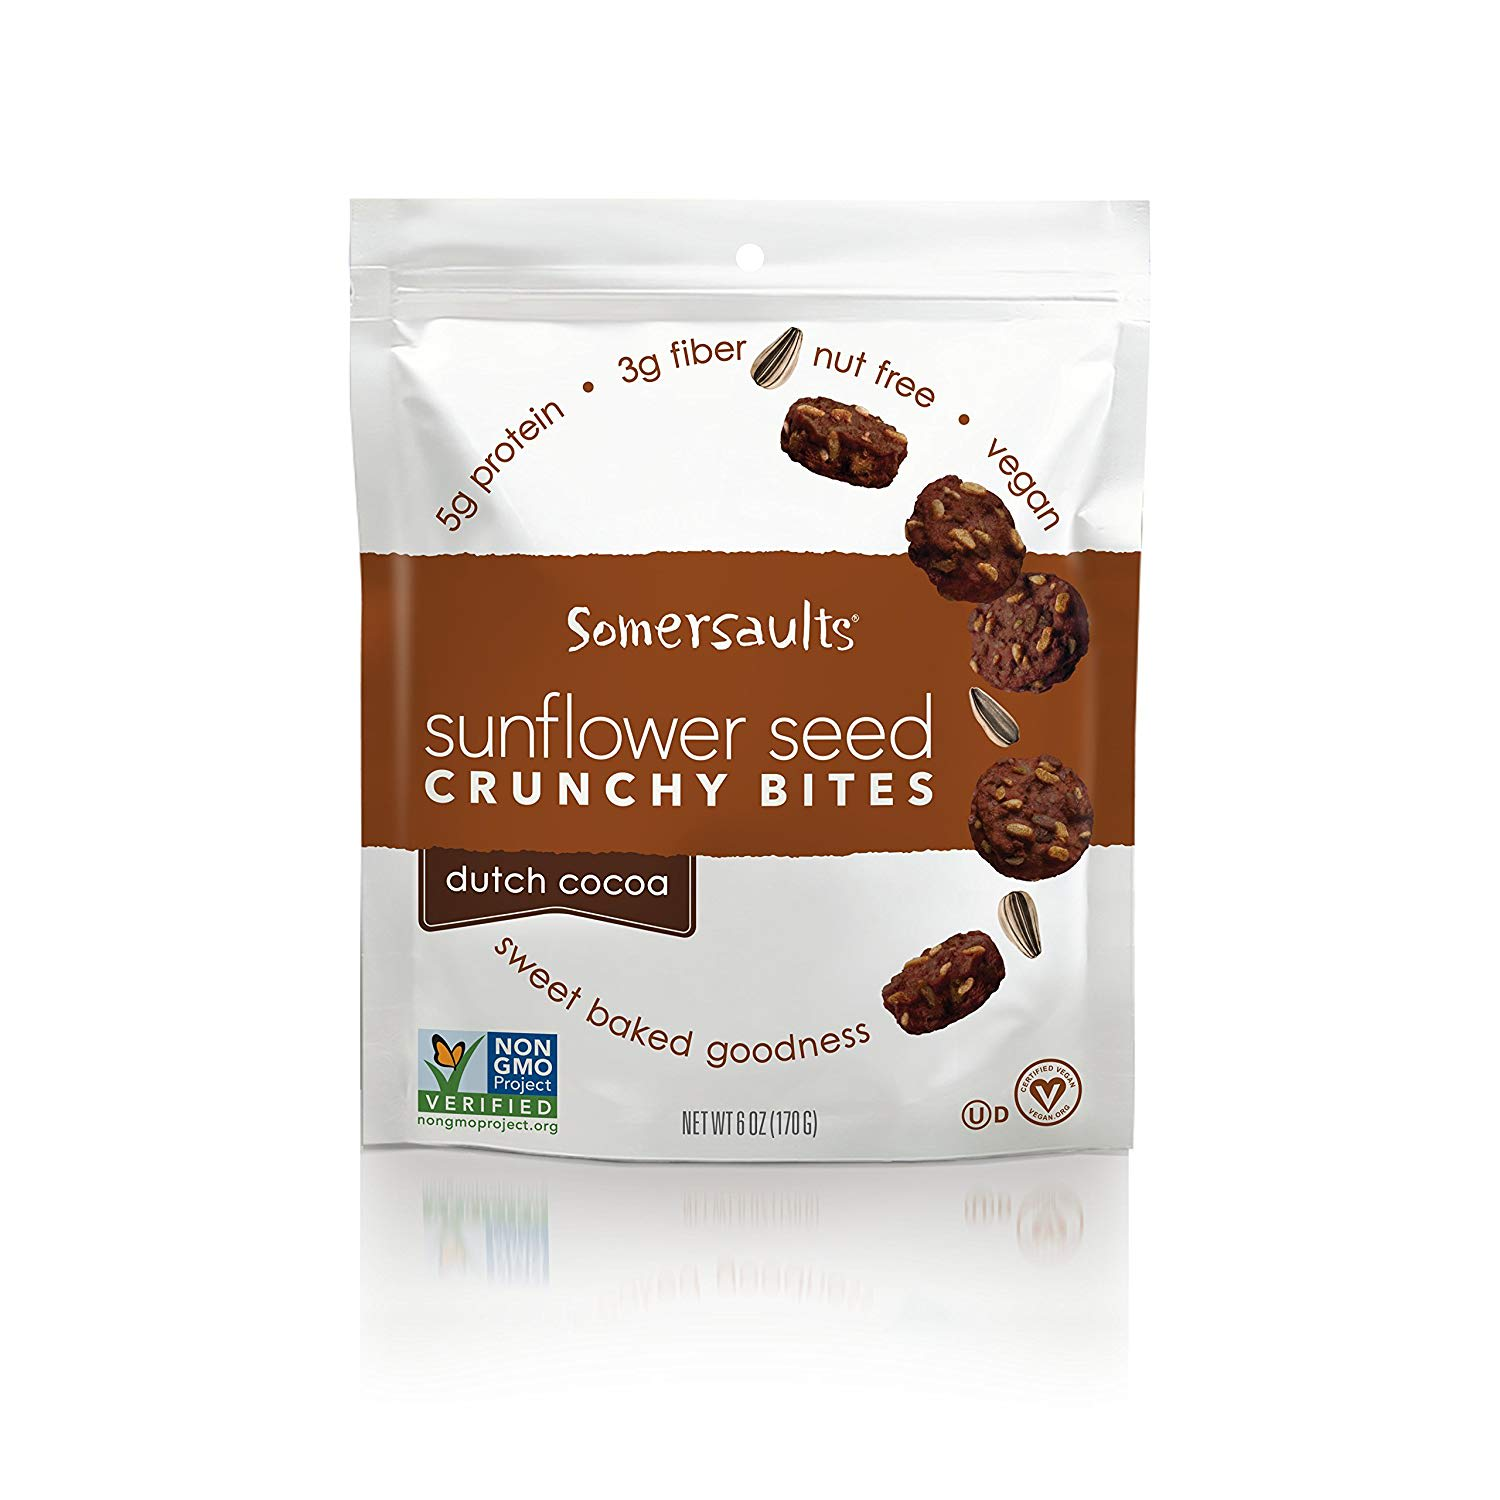 Somersaults Sunflower Seed Bites, Dutch Cocoa